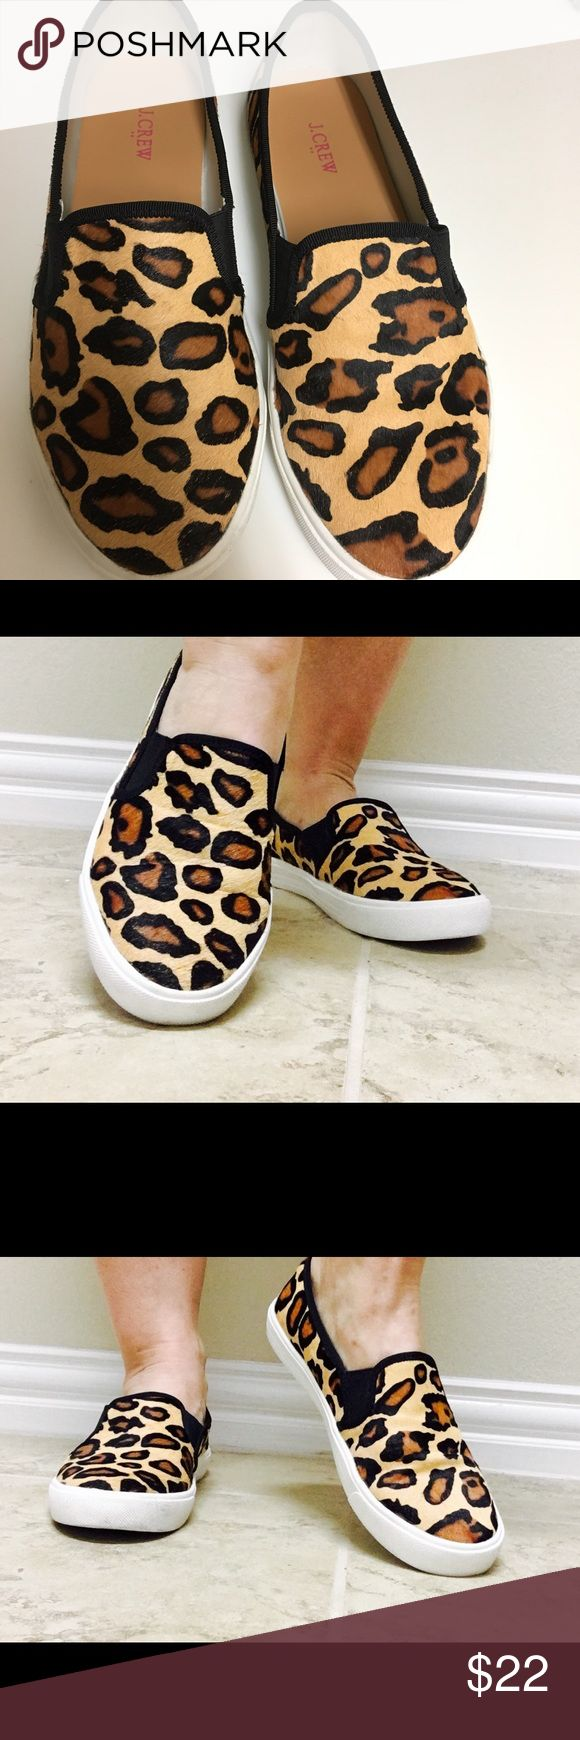 J. Crew Pony Hair Leopard Print Slip on Sneakers J. Crew Slip on Sneakers in Leopard Print. Great used condition! J. Crew Shoes Sneakers